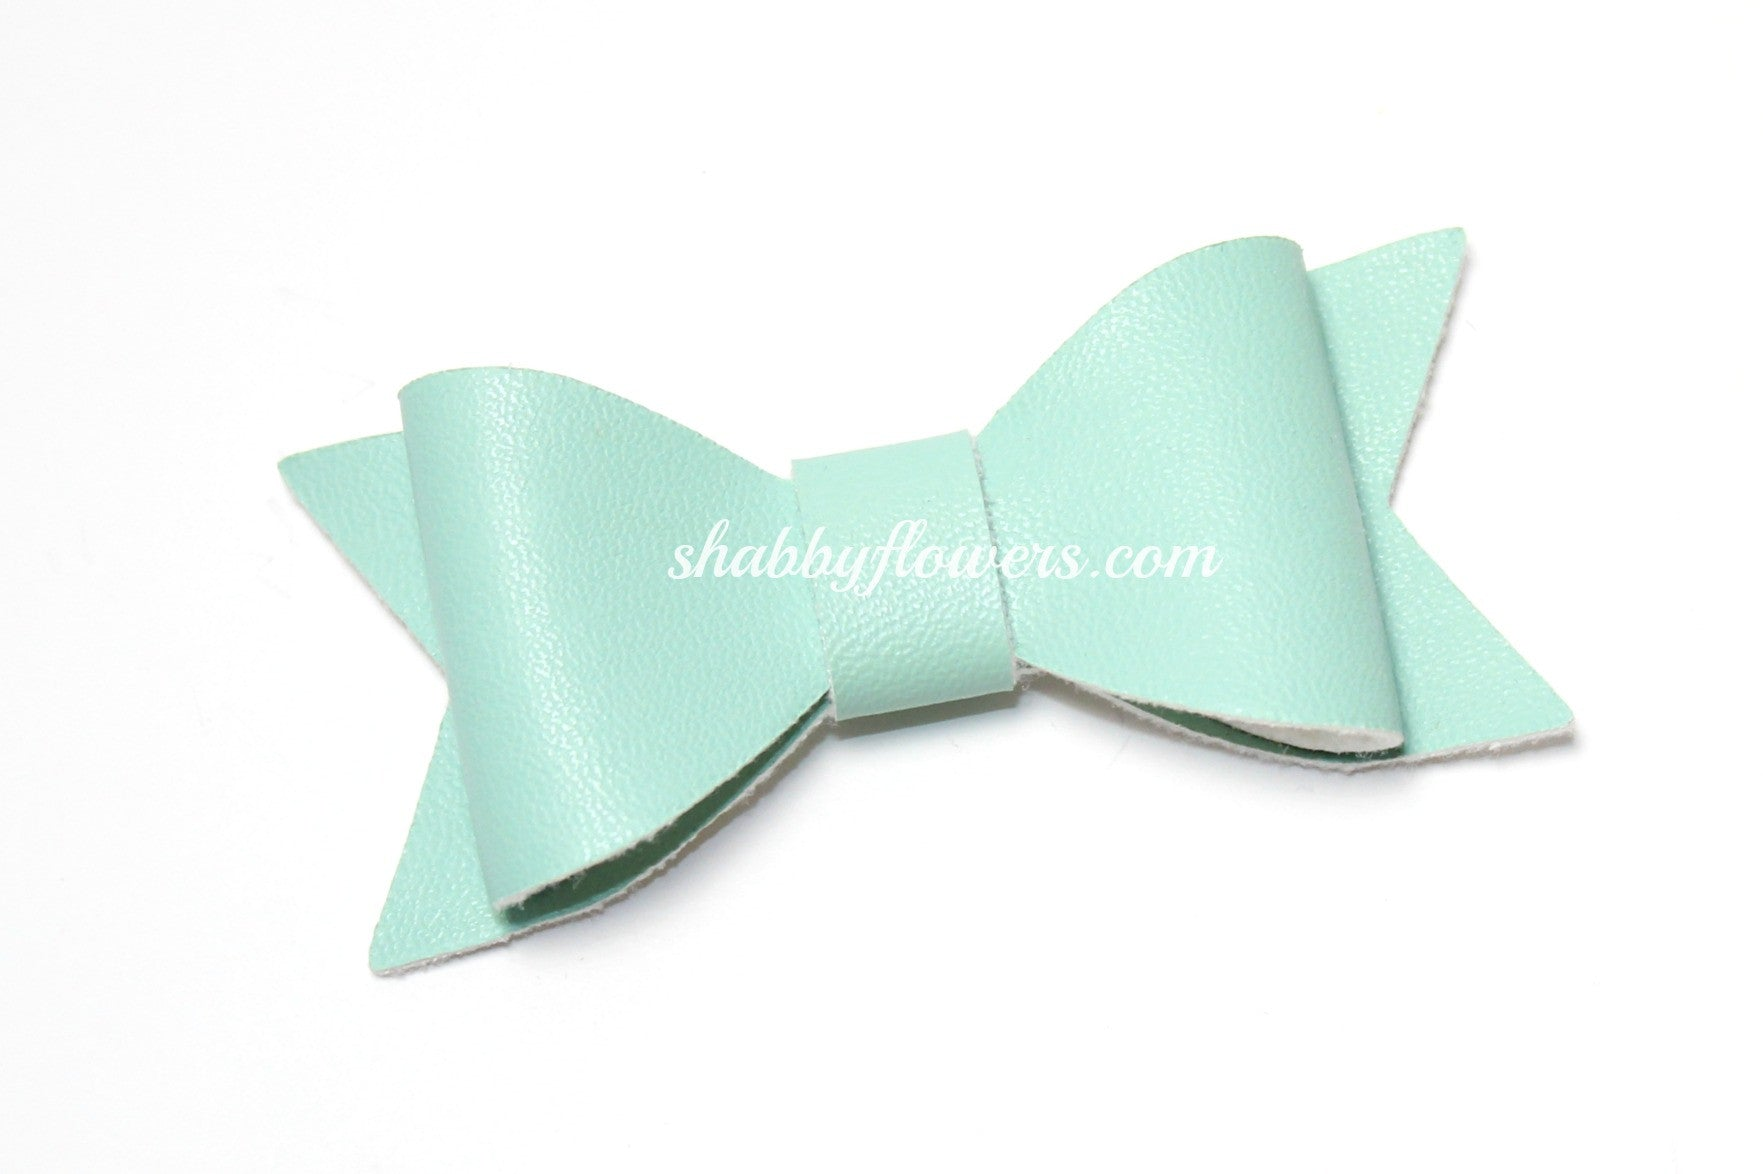 Faux Leather Bow - Mint - shabbyflowers.com